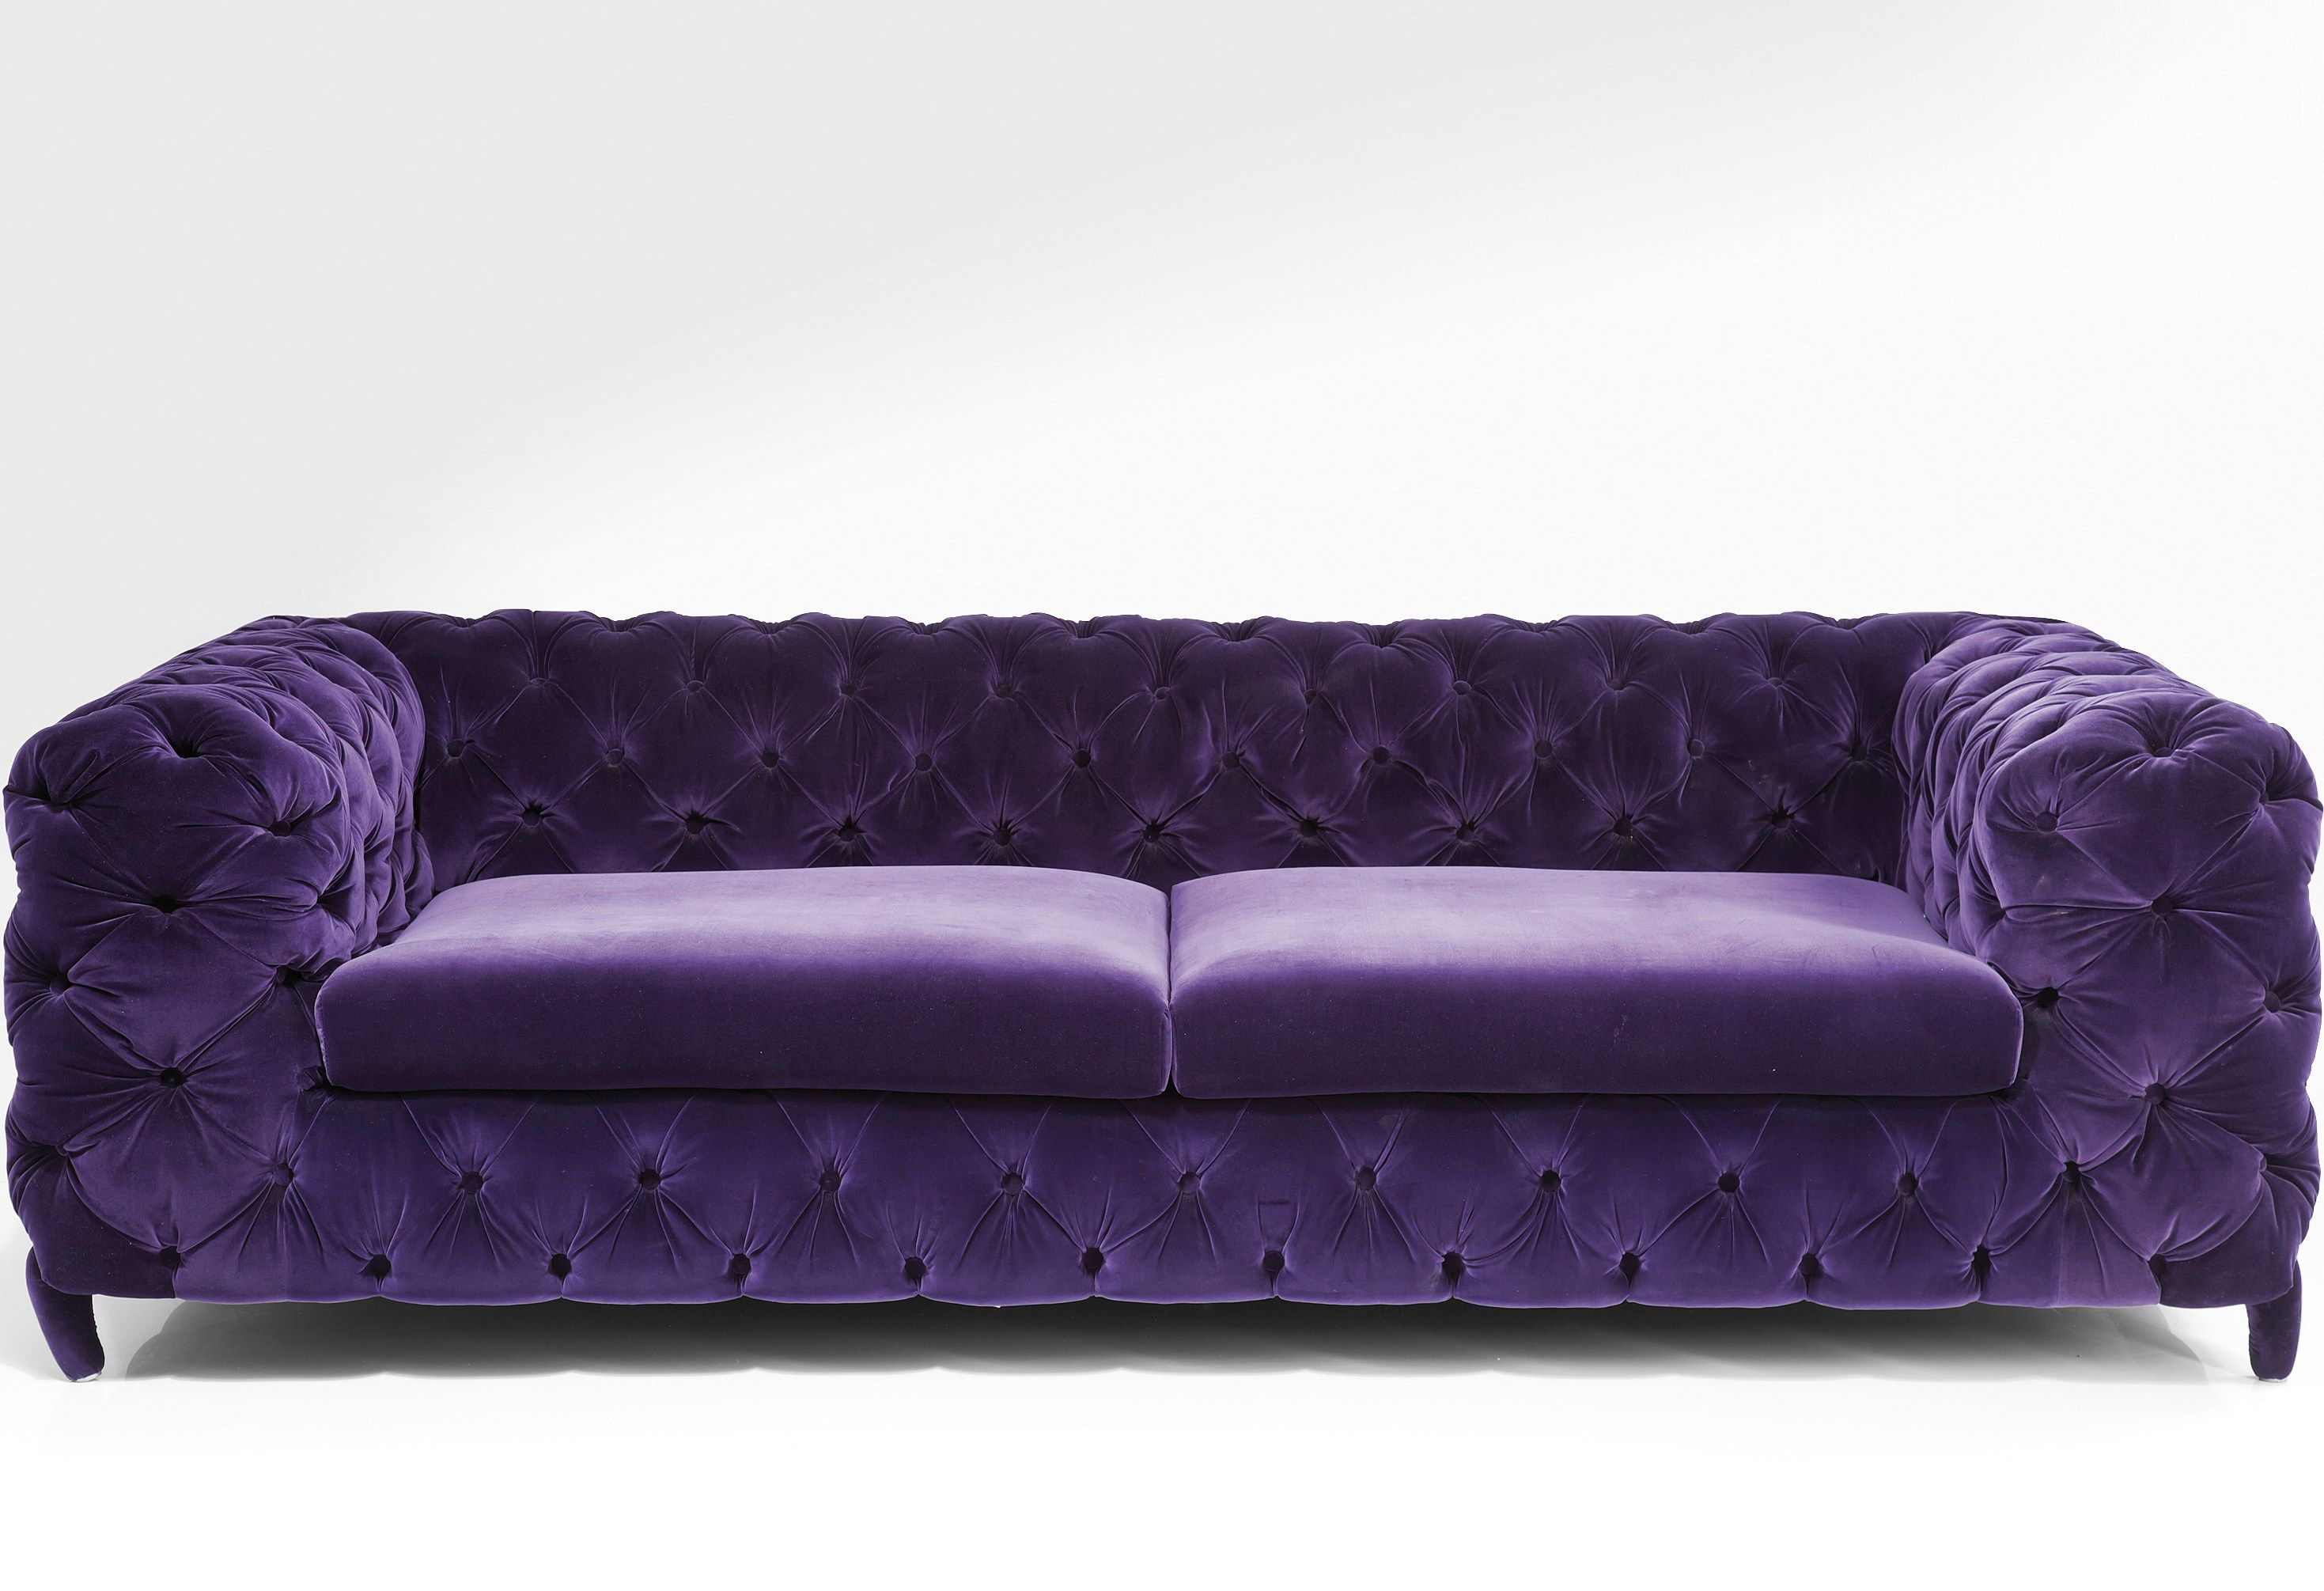 Weve selected 20 beautiful velvet sofas, in a variety of